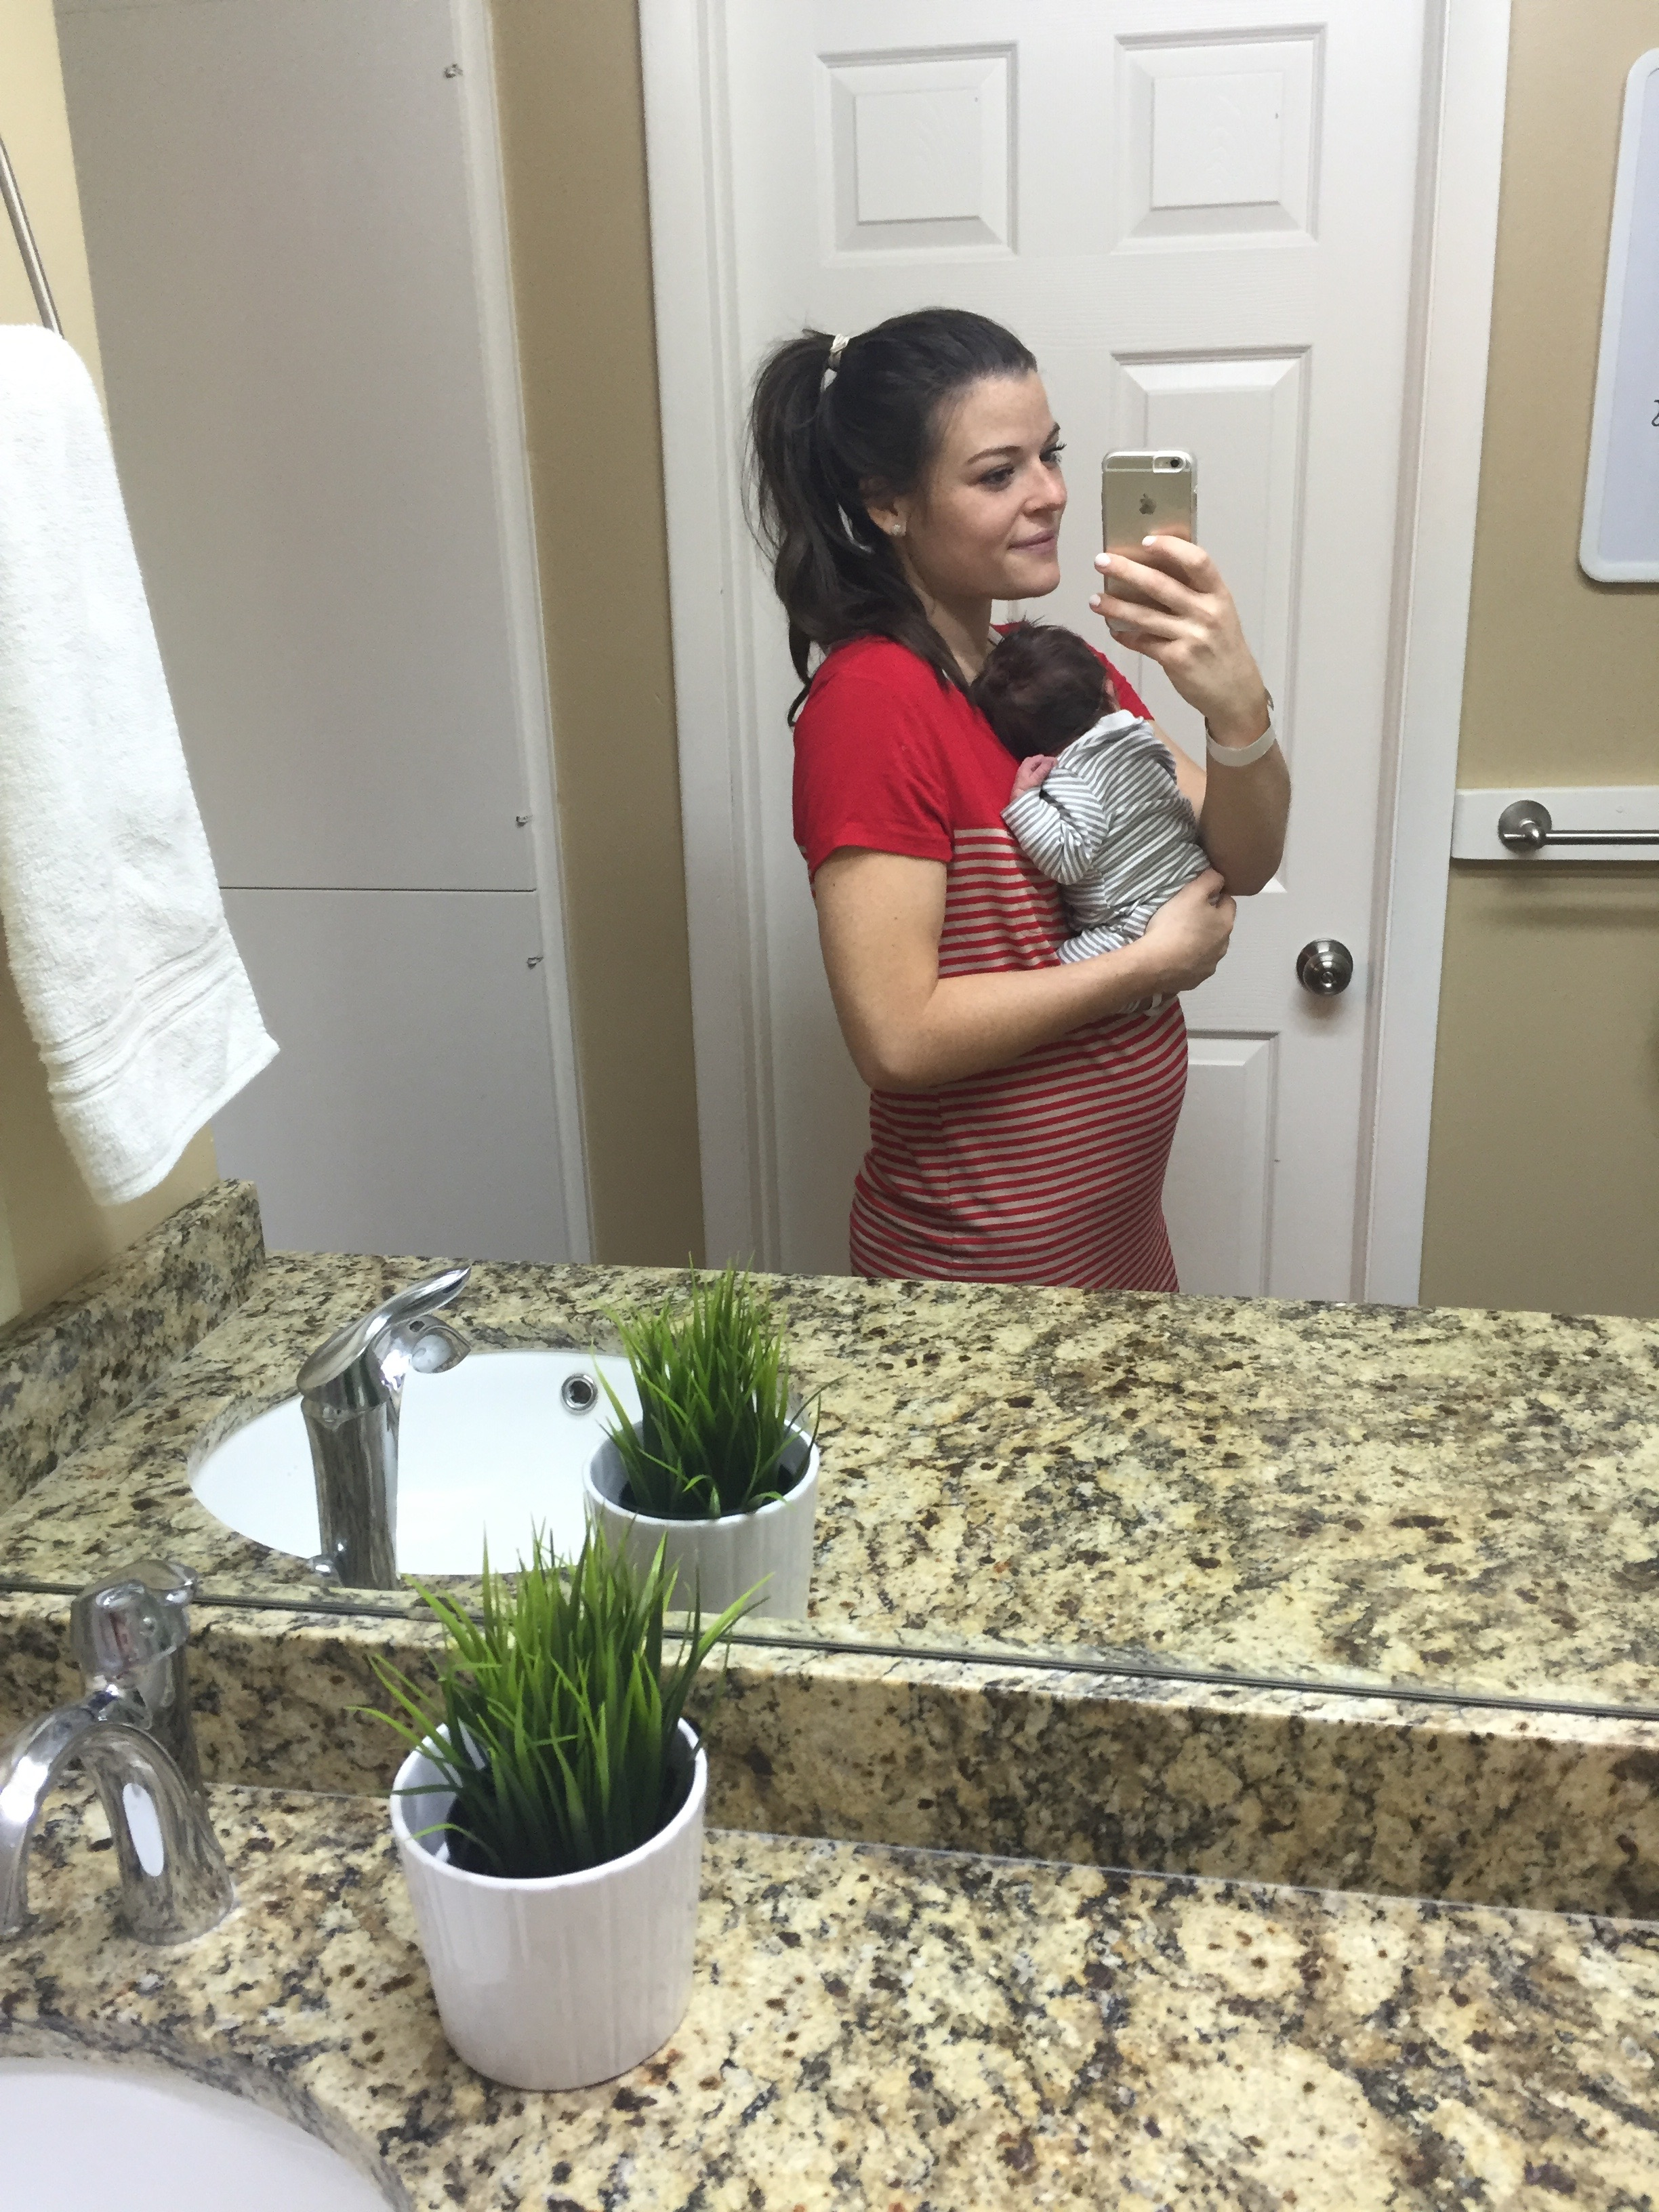 Right when we got home from the hospital -- 2 days postpartum